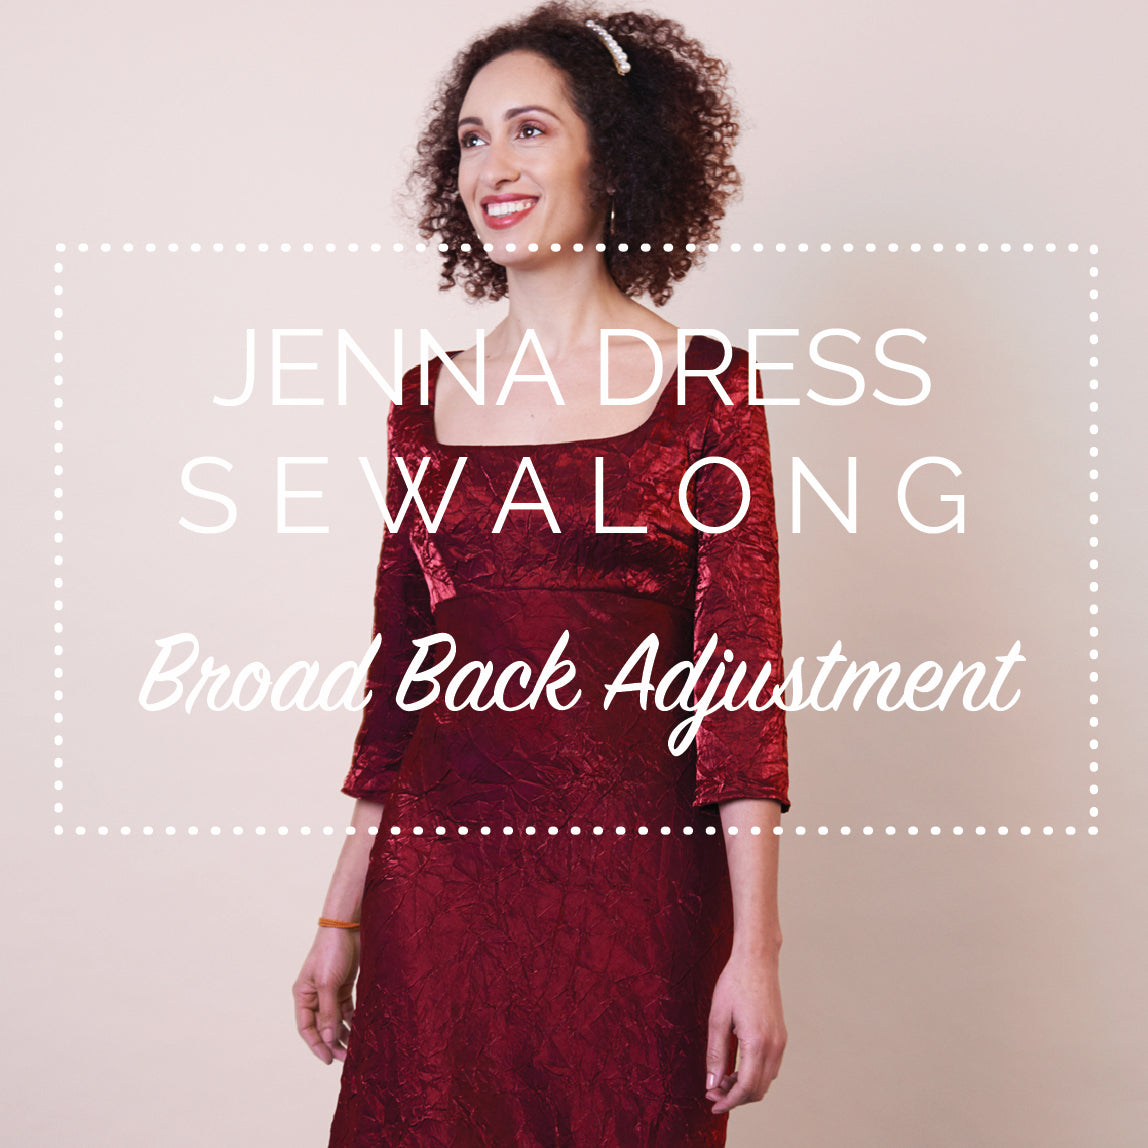 Jenna Dress Sewalong - How to fix a tight back (broad back alteration)